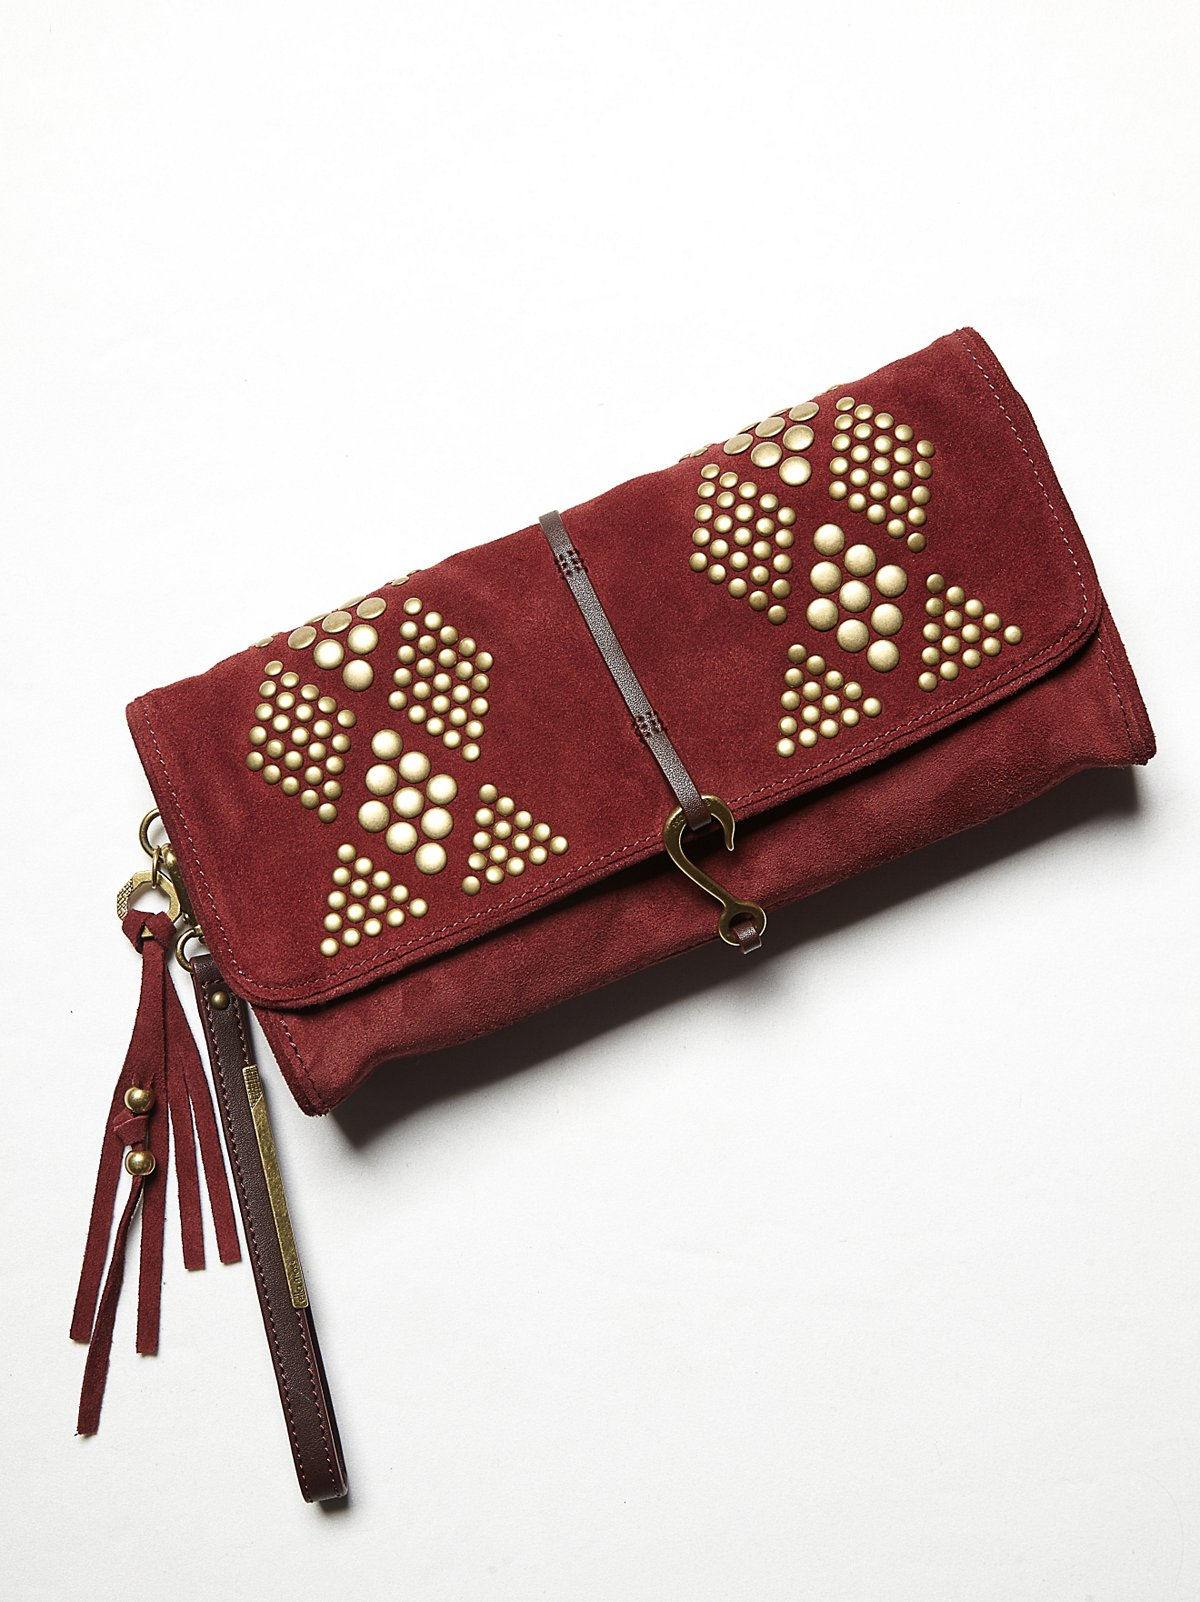 Diamond Suede Clutch